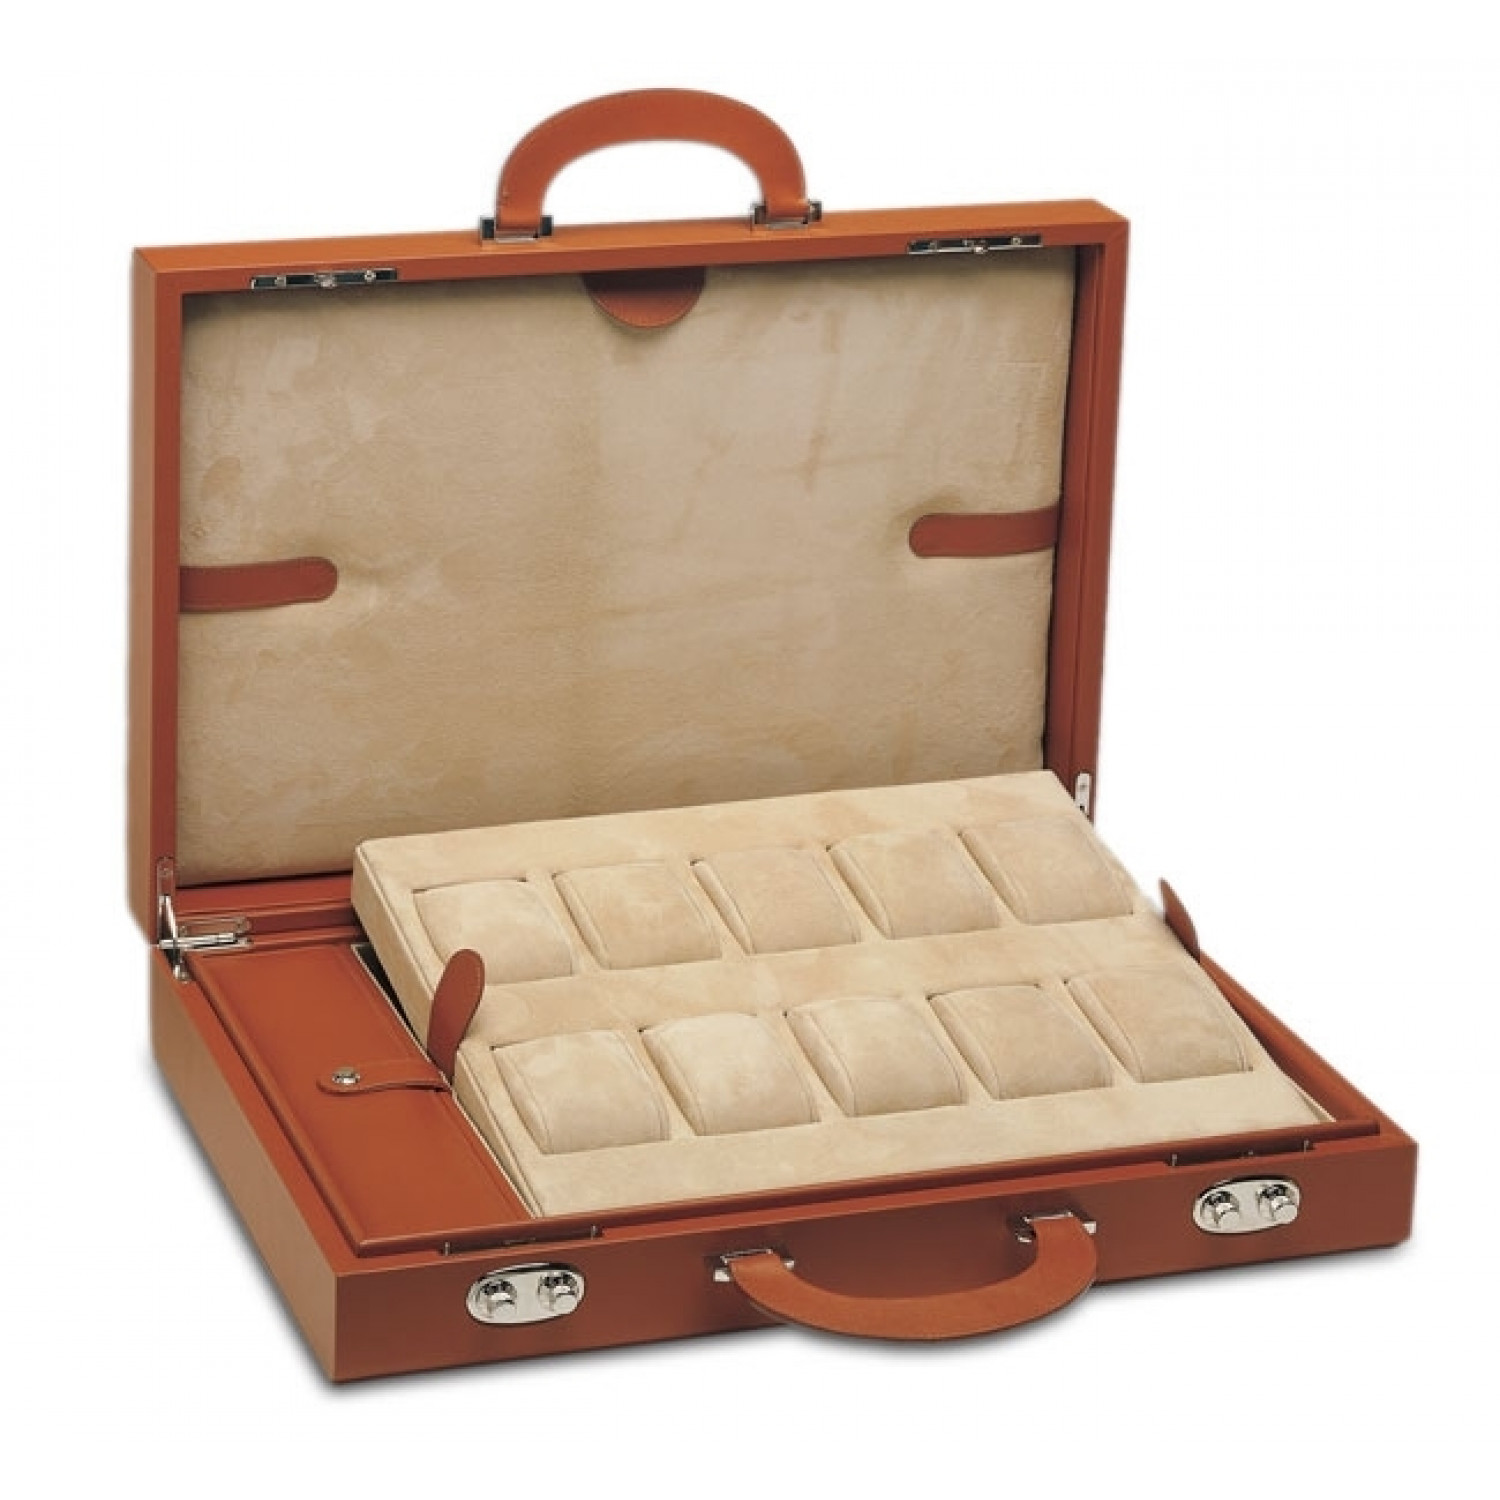 watch case, watch cases, watch box, watch boxes, jewelry case, jewelry cases, jewelry box, jewelry boxes